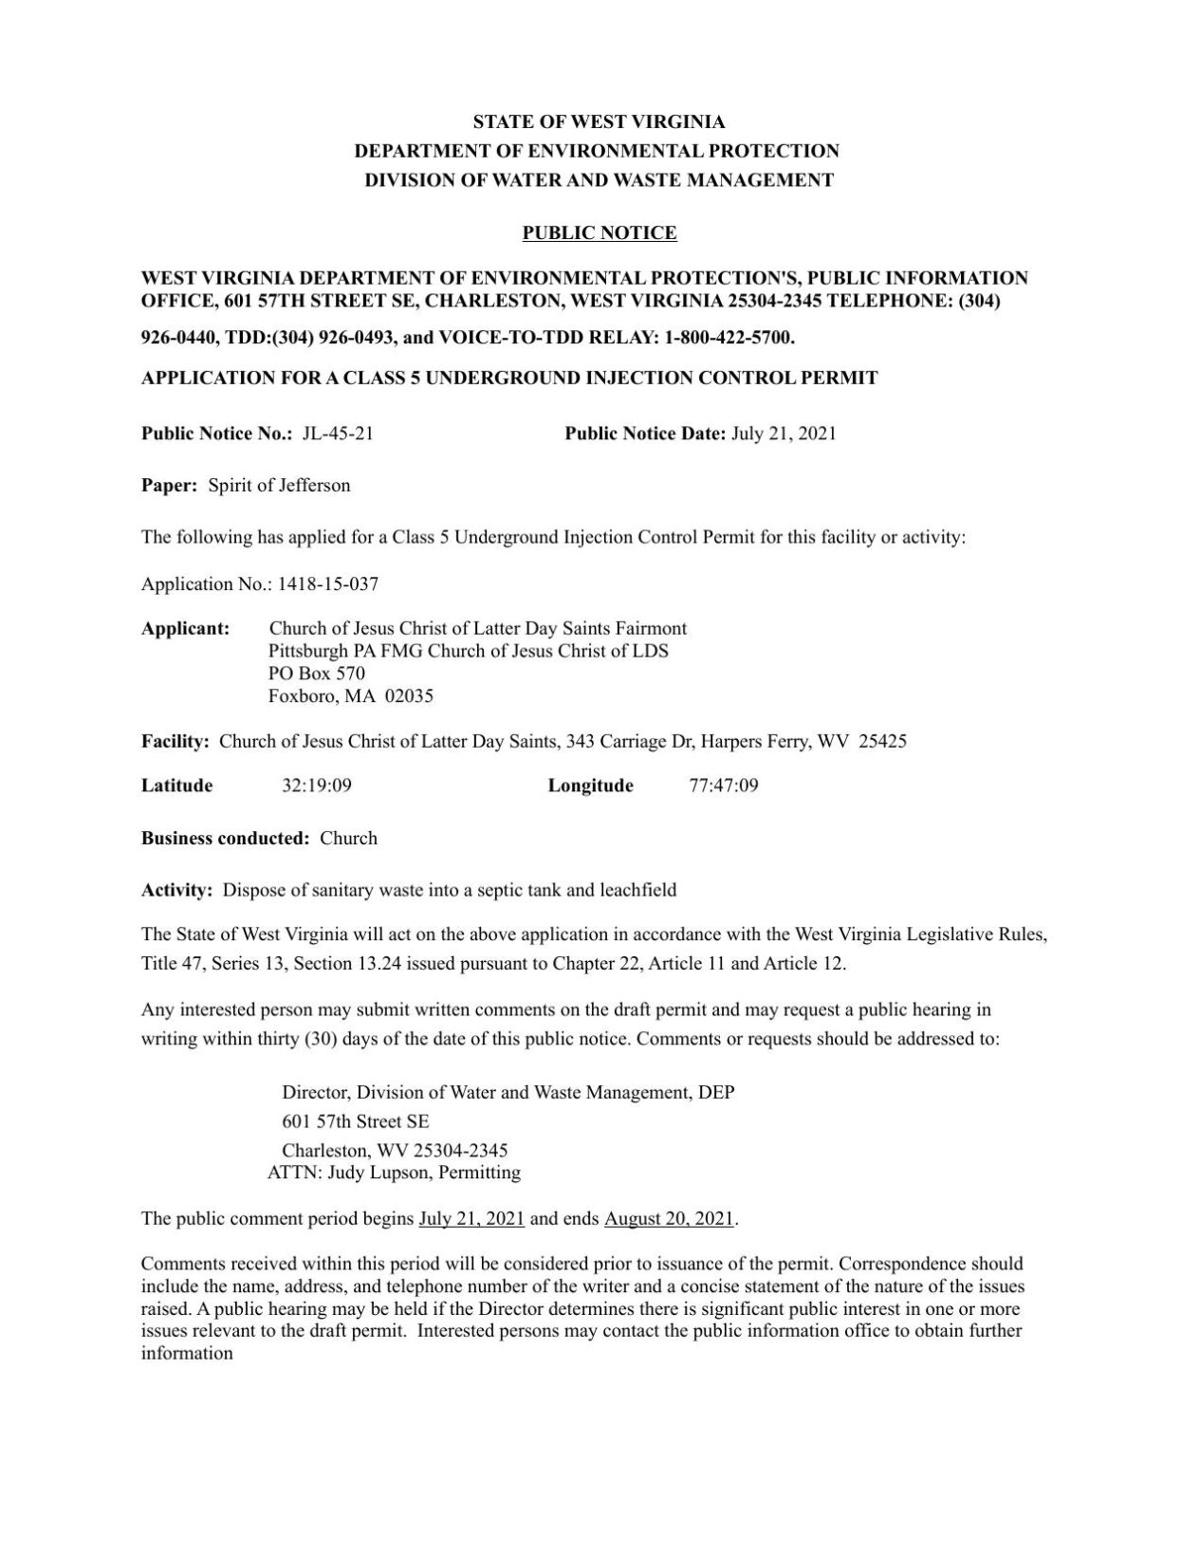 Public Notice 3 WV Dept of Environmental Protection